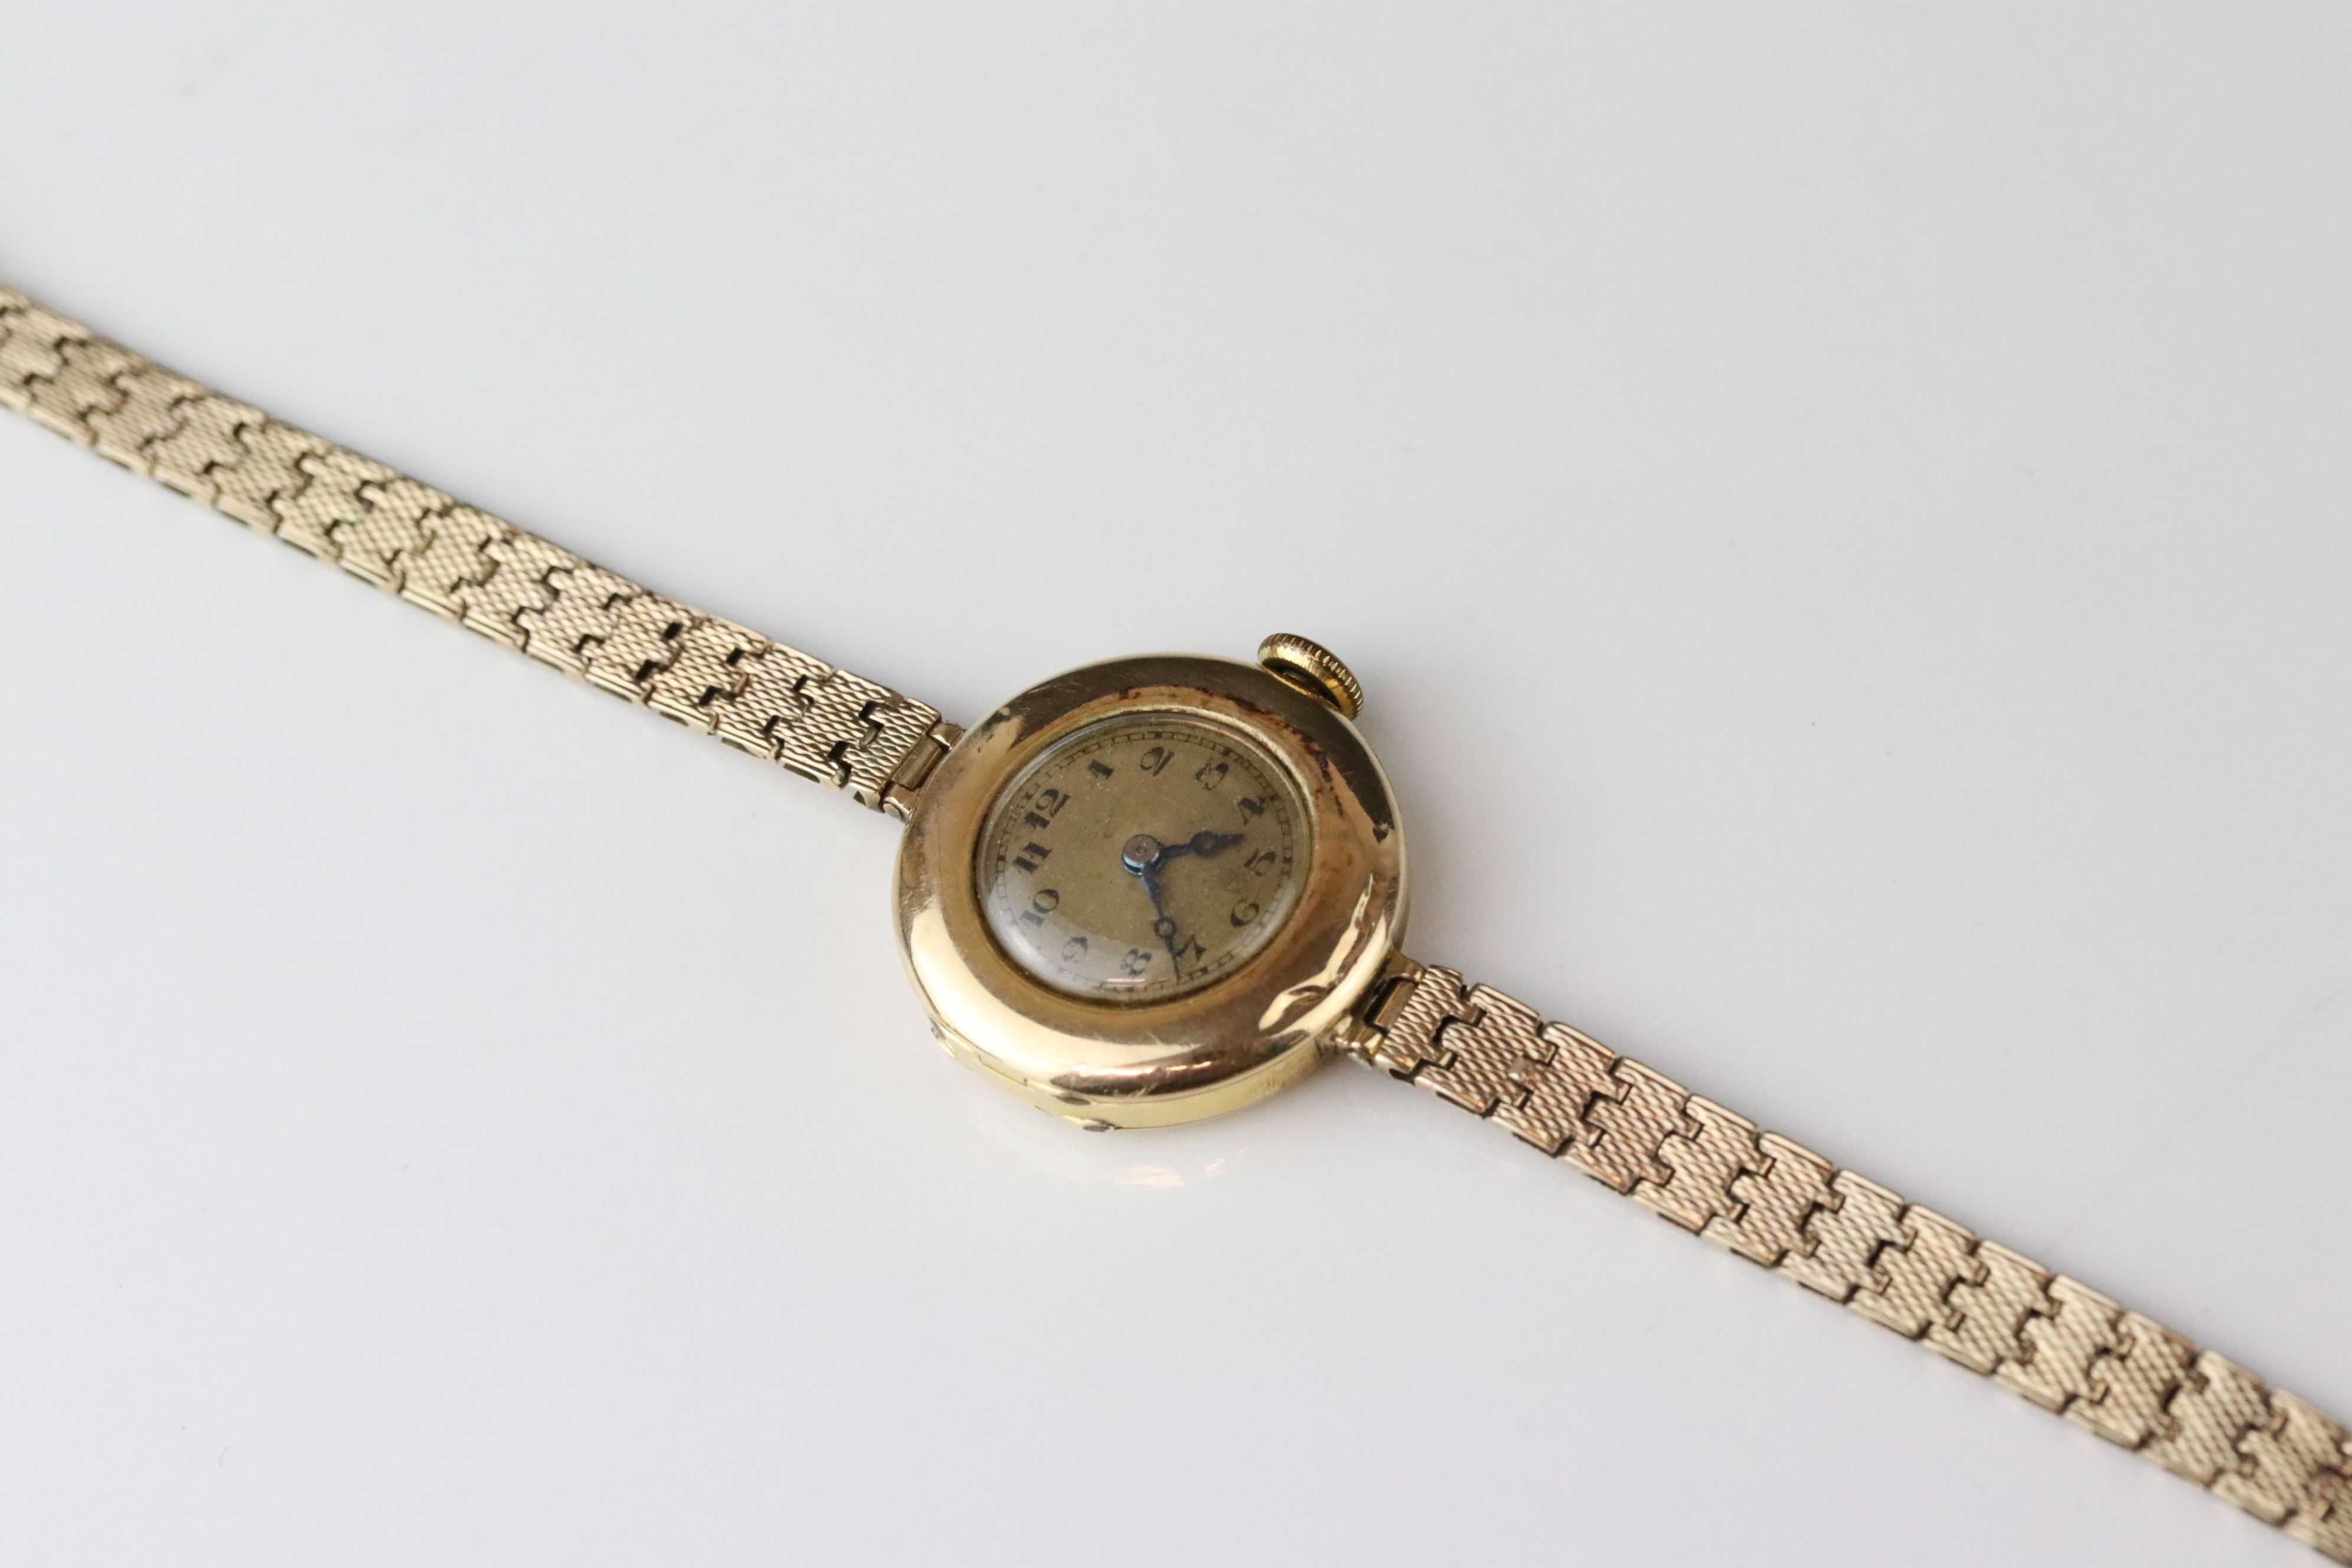 Early 20th century 9ct gold cased wristwatch, gold-coloured dial, black Arabic numerals and poker